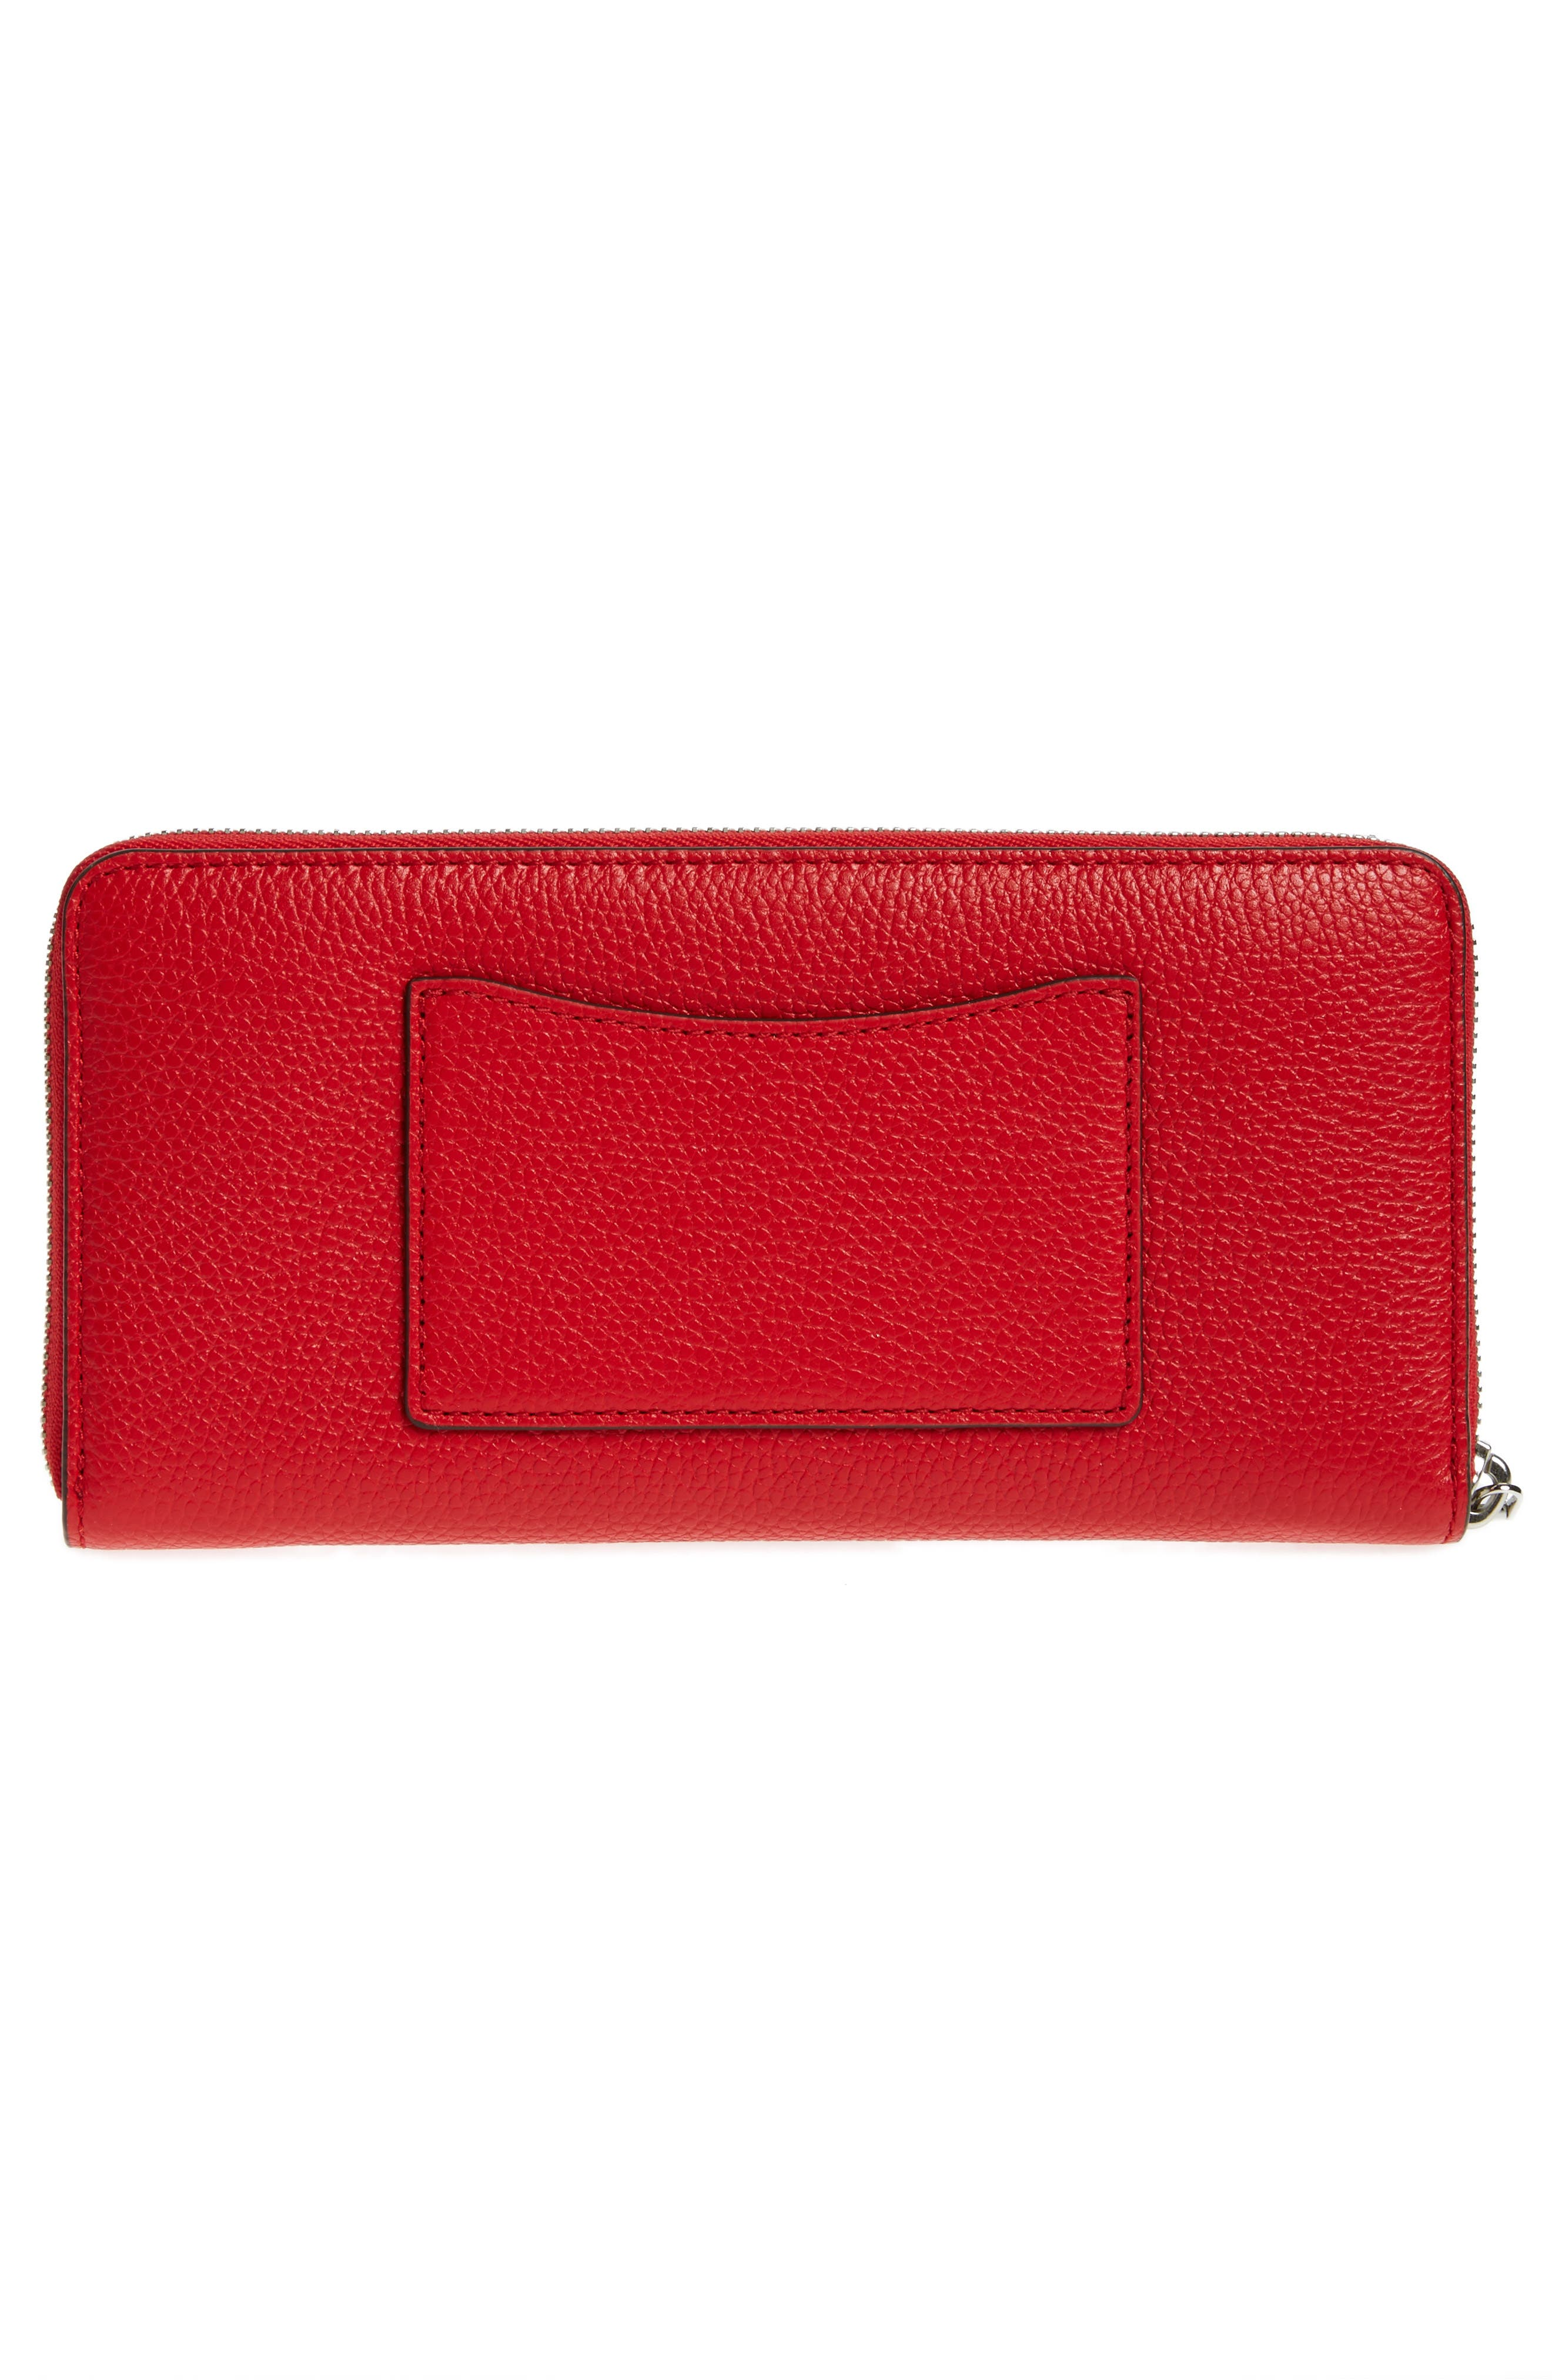 Mercer Leather Continental Wallet,                             Alternate thumbnail 12, color,